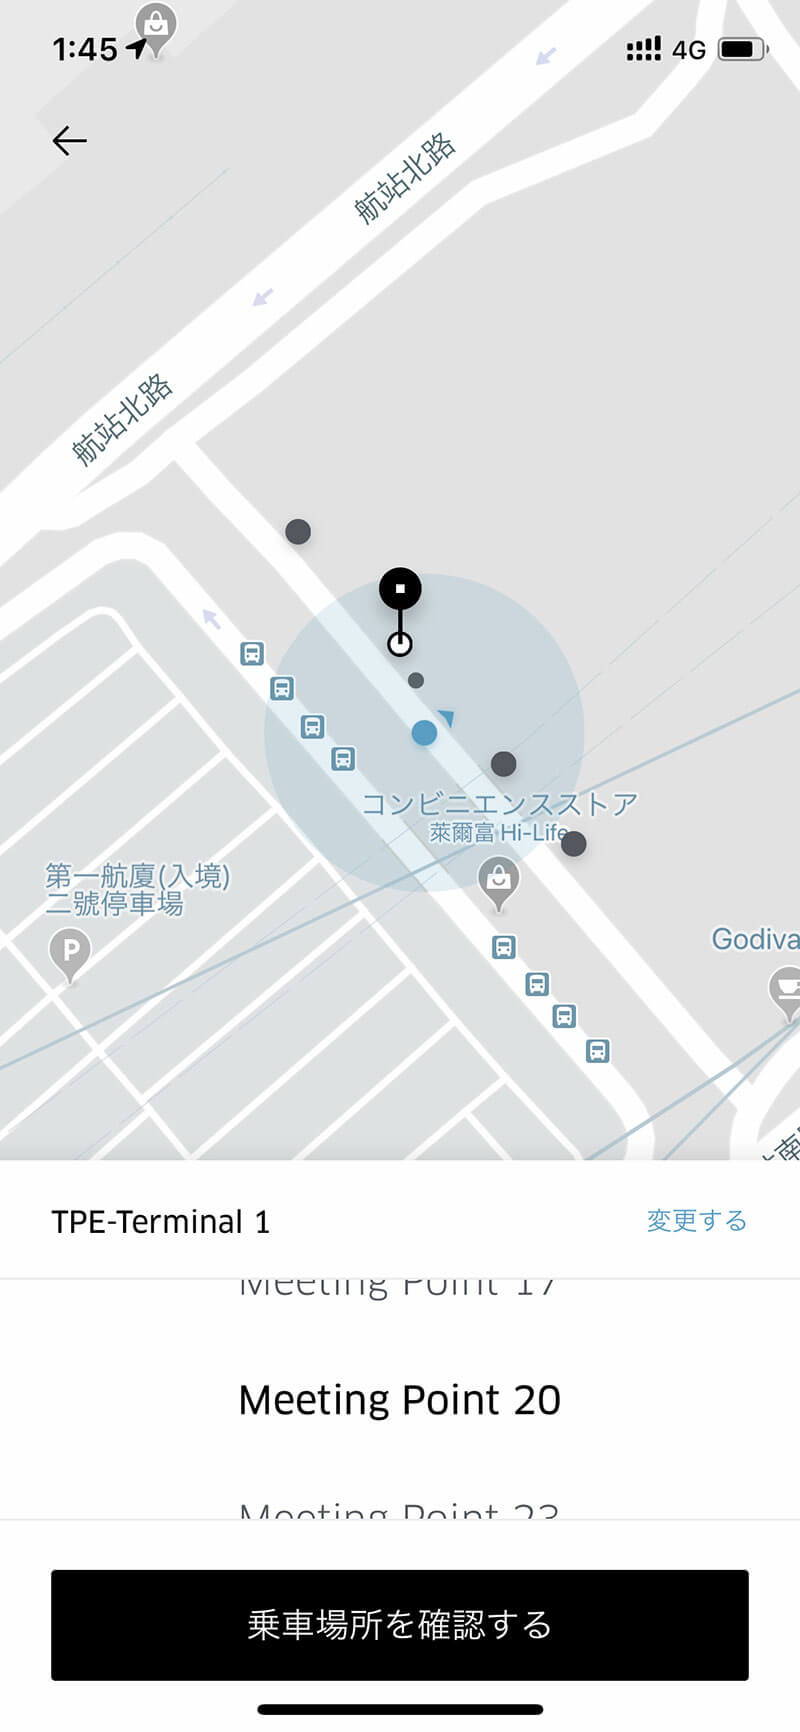 Uberの乗車場所はMeeting Pointを指定